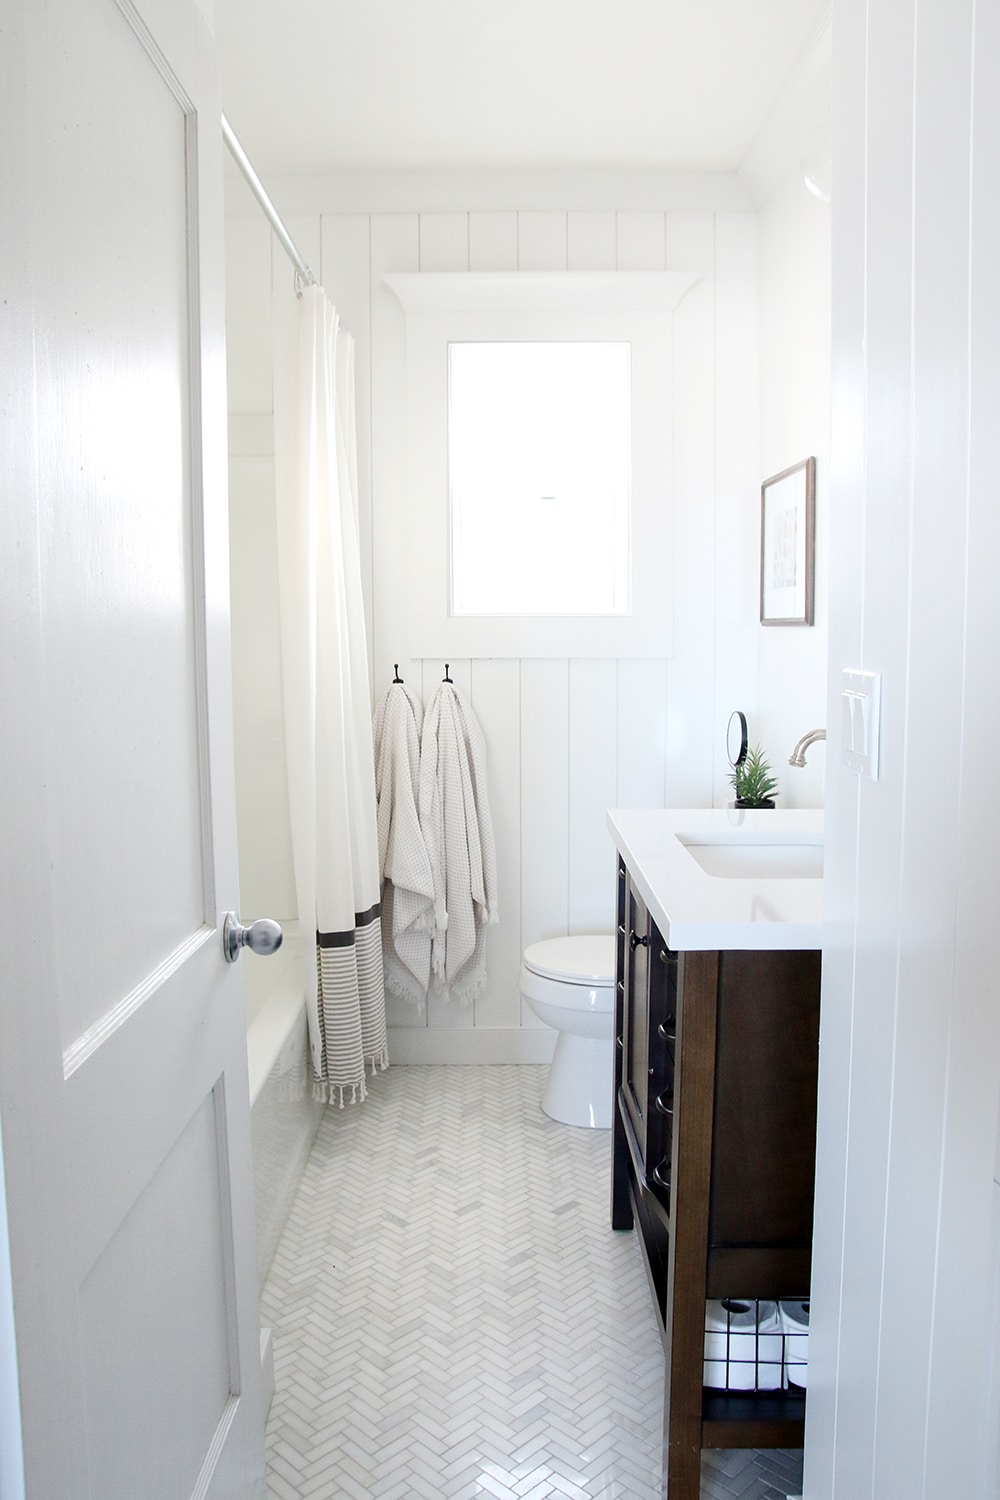 Small Bathroom Renovation HowTo Videos Chris Loves Julia - Bathroom renovation videos